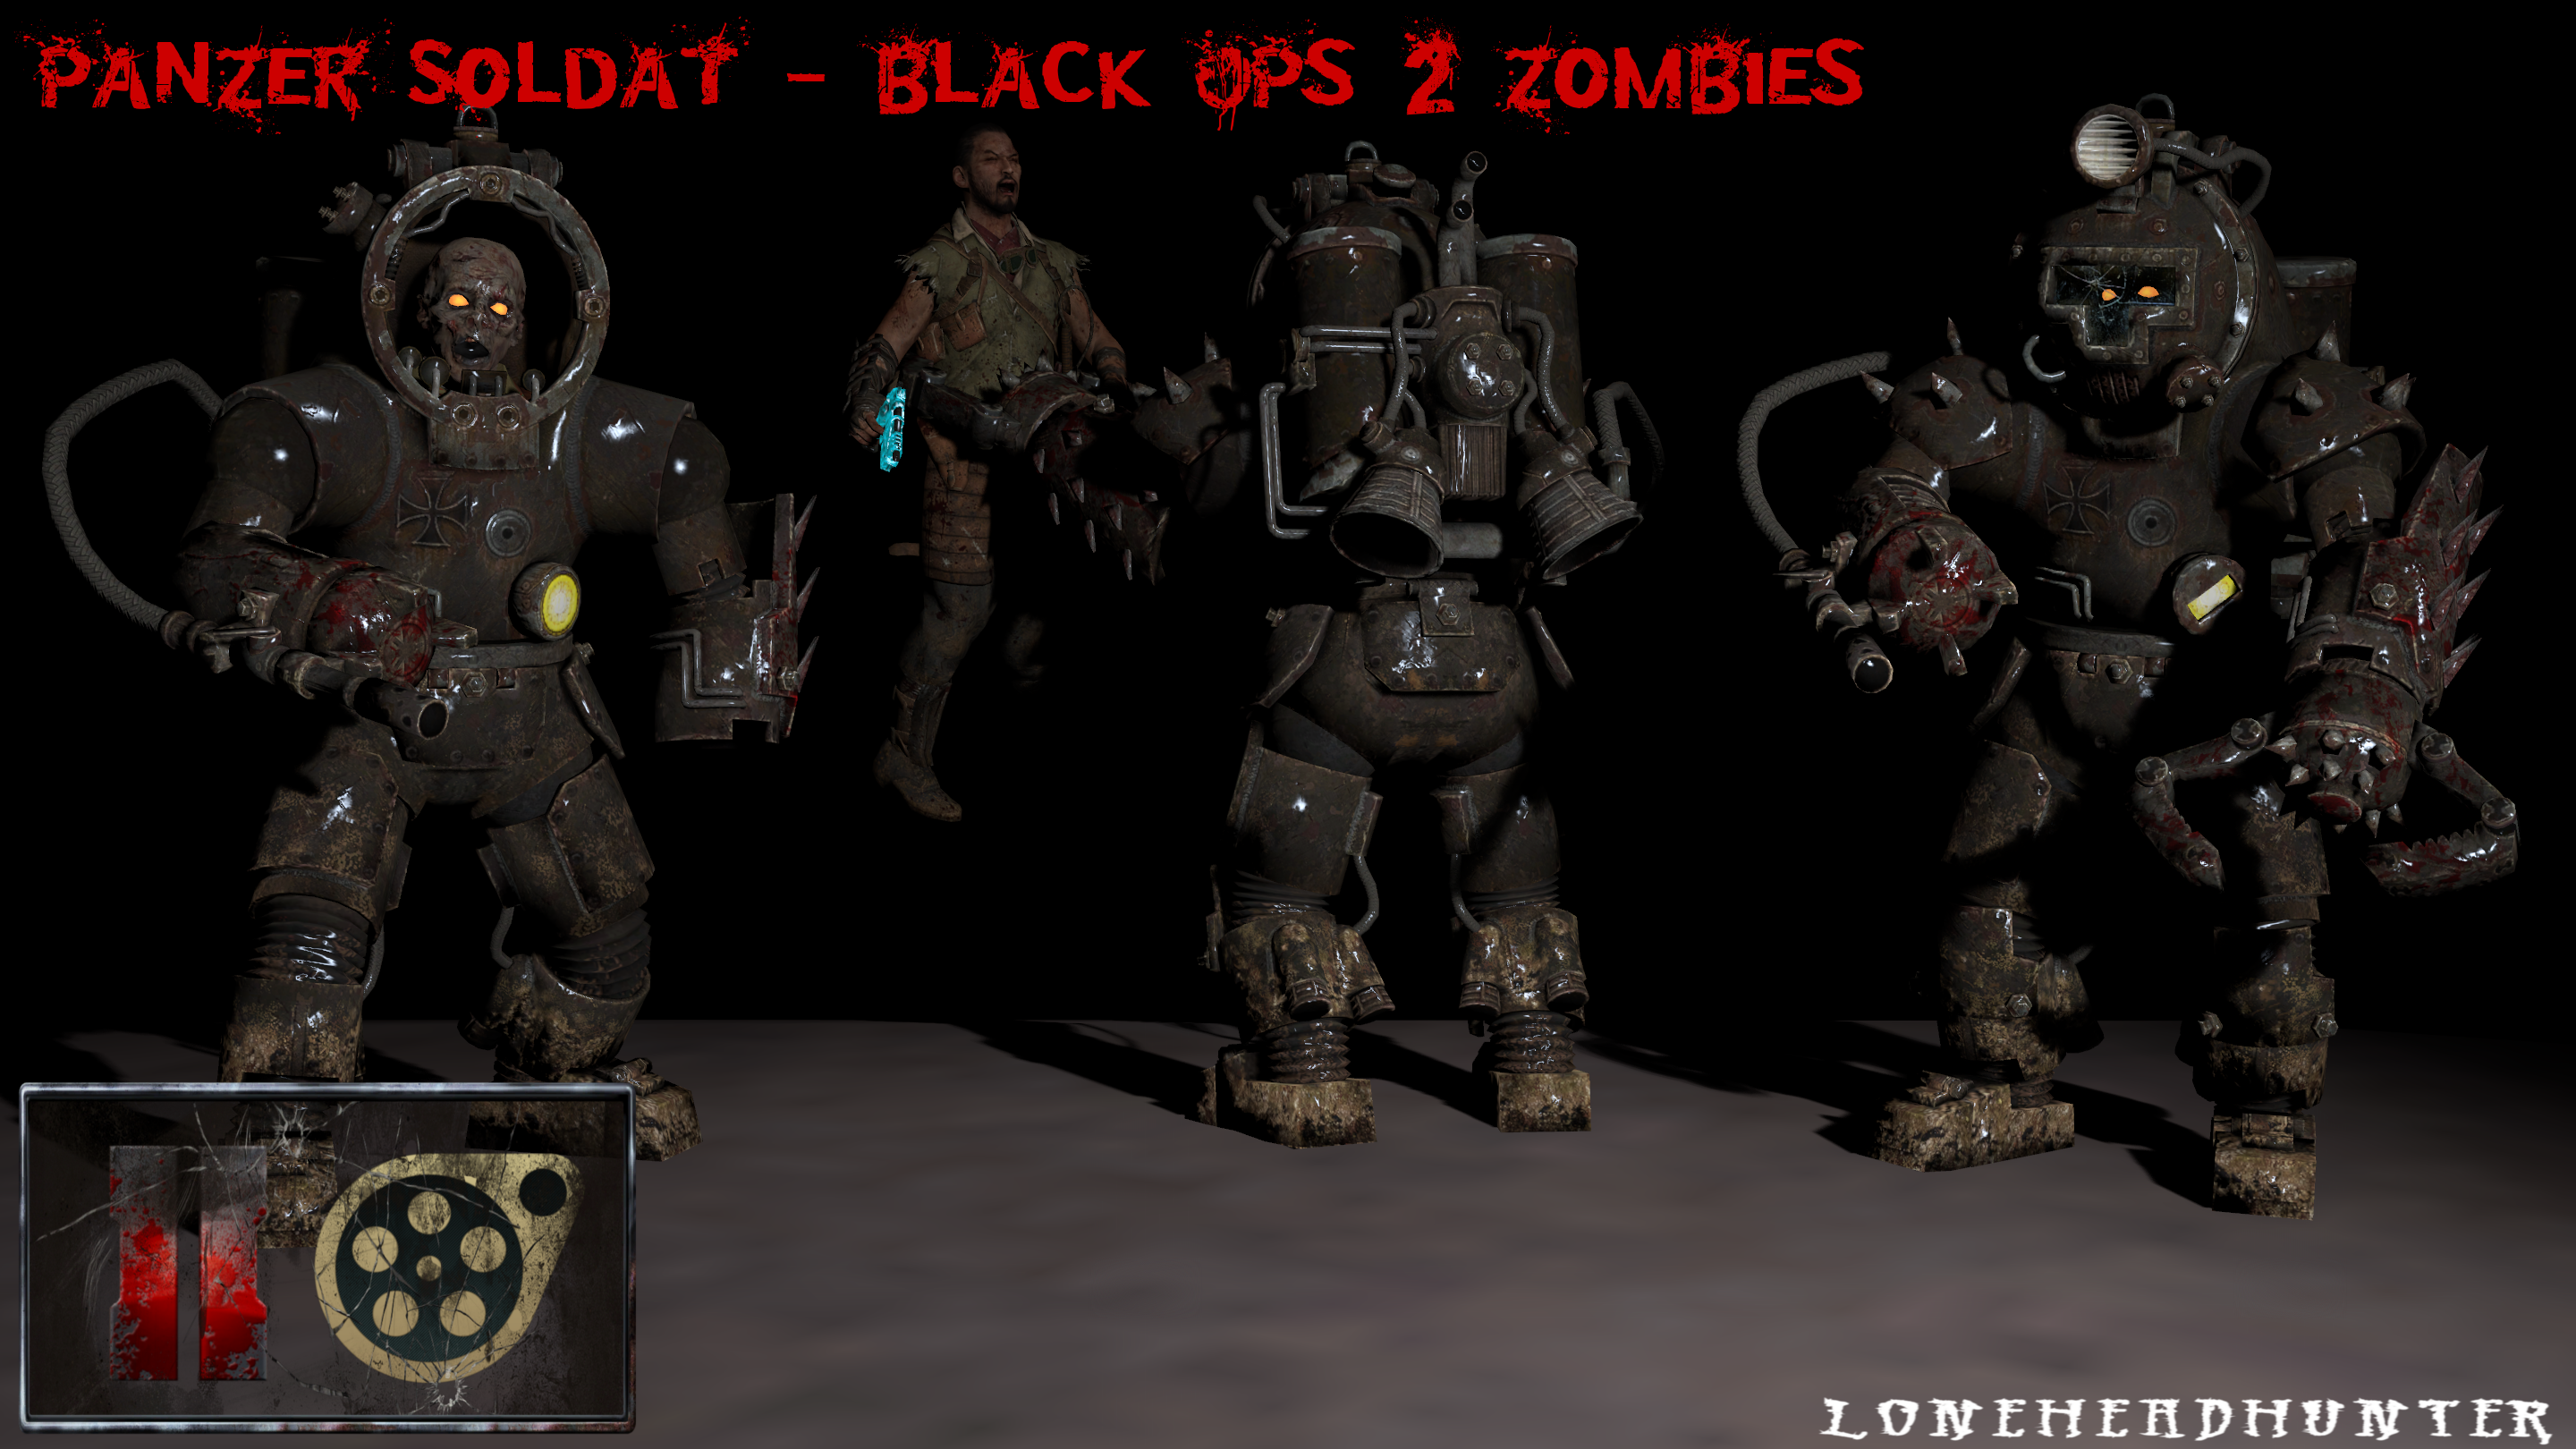 waw zombie maps with Dl Black Ops 2 Zm Panzer Soldat Sfm 559801477 on Pezbot 005p For World At War together with 4240611 additionally Nazi Zombies Der Riese Strategy Guide furthermore Top 10 Des Armes Les Plus Emblematiques Et Fun Du Mode Zombies De Call Of Duty besides DL Black Ops 2 ZM Panzer Soldat SFM 559801477.